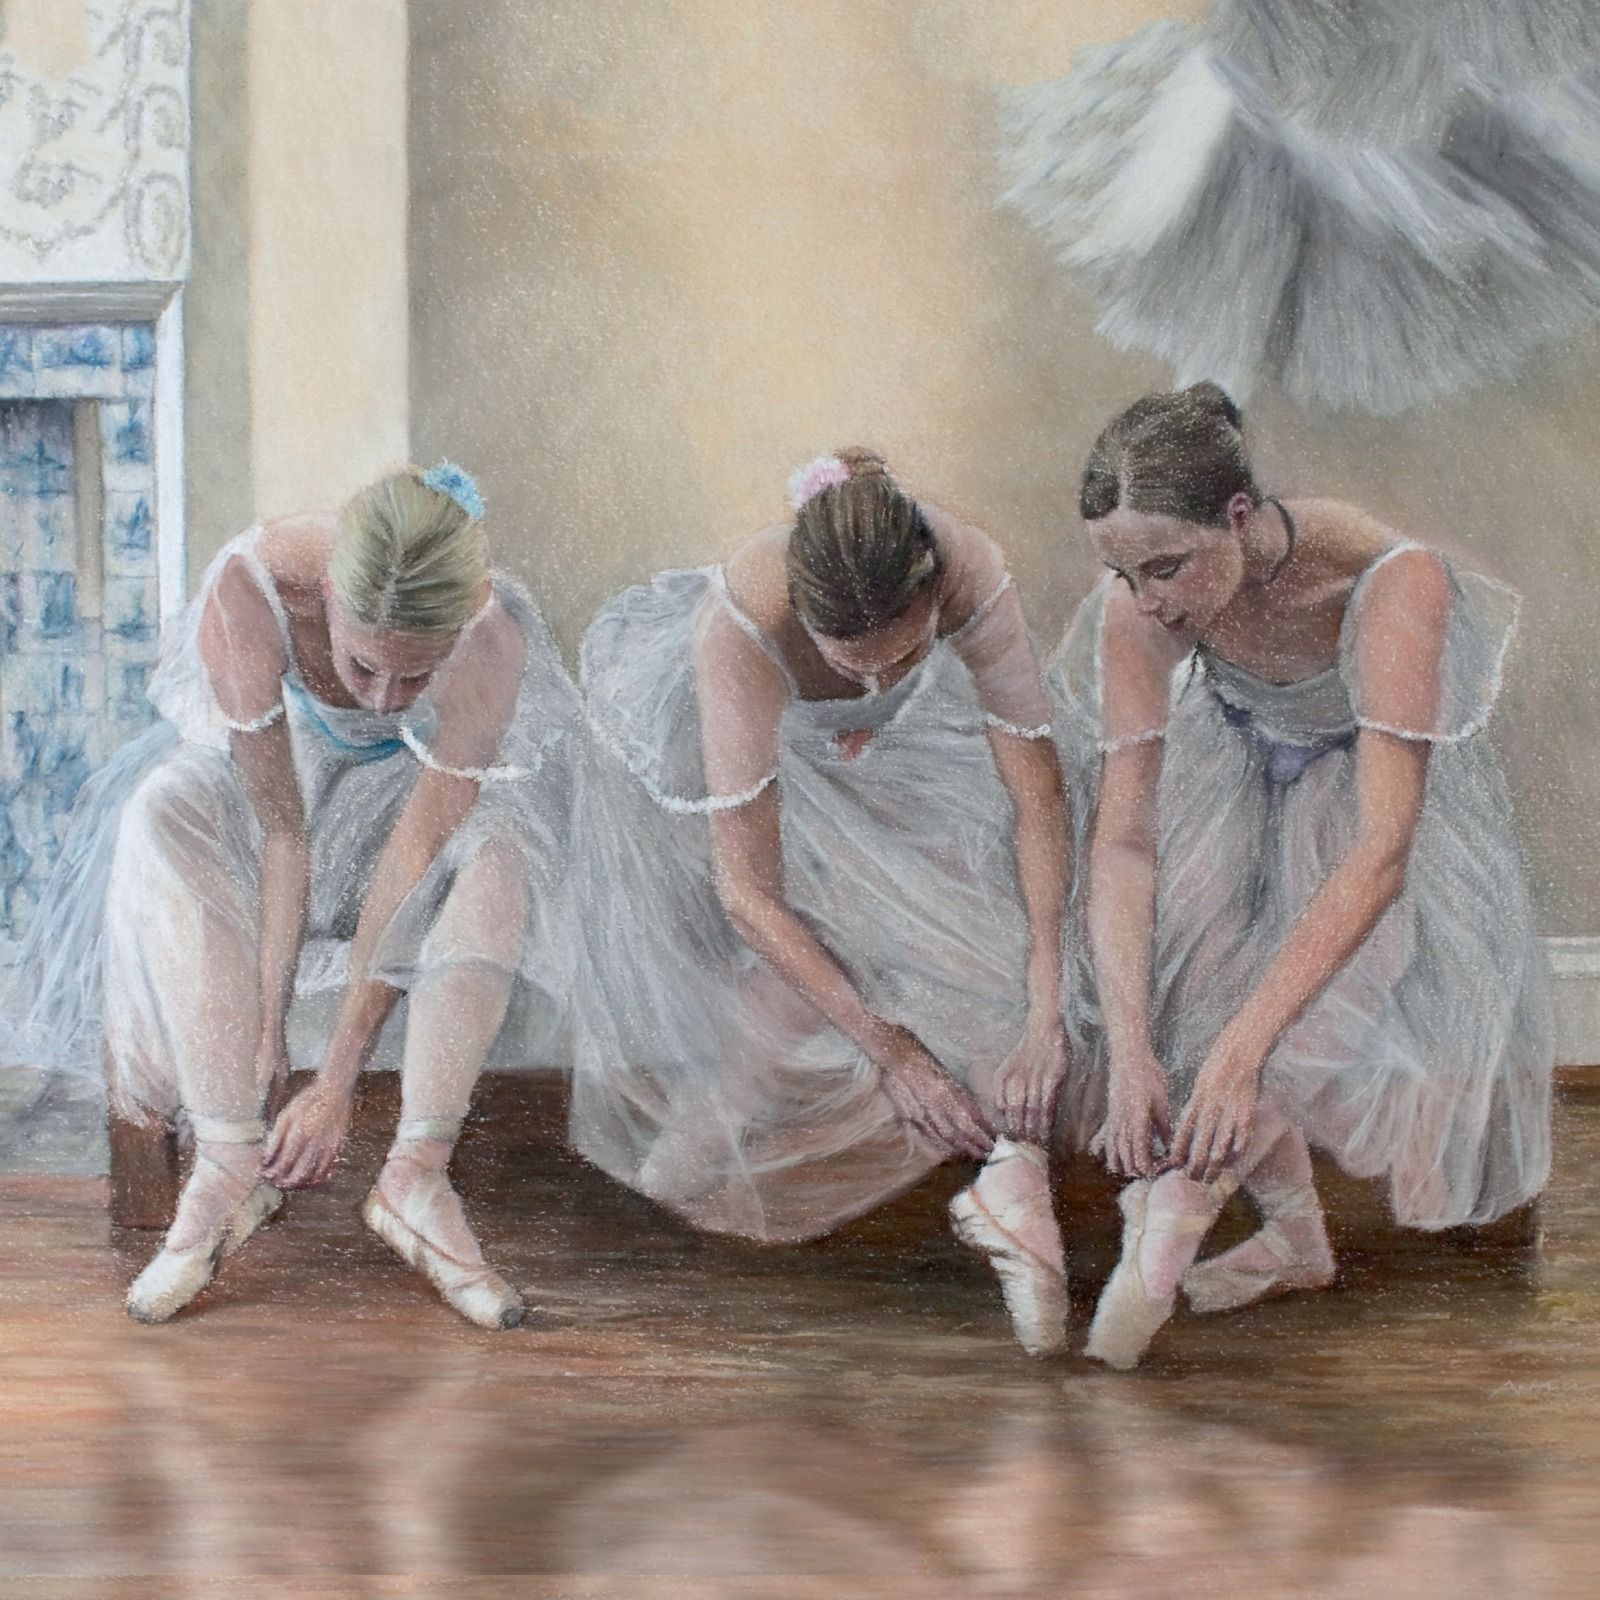 Ballerinas tying pointe shoes